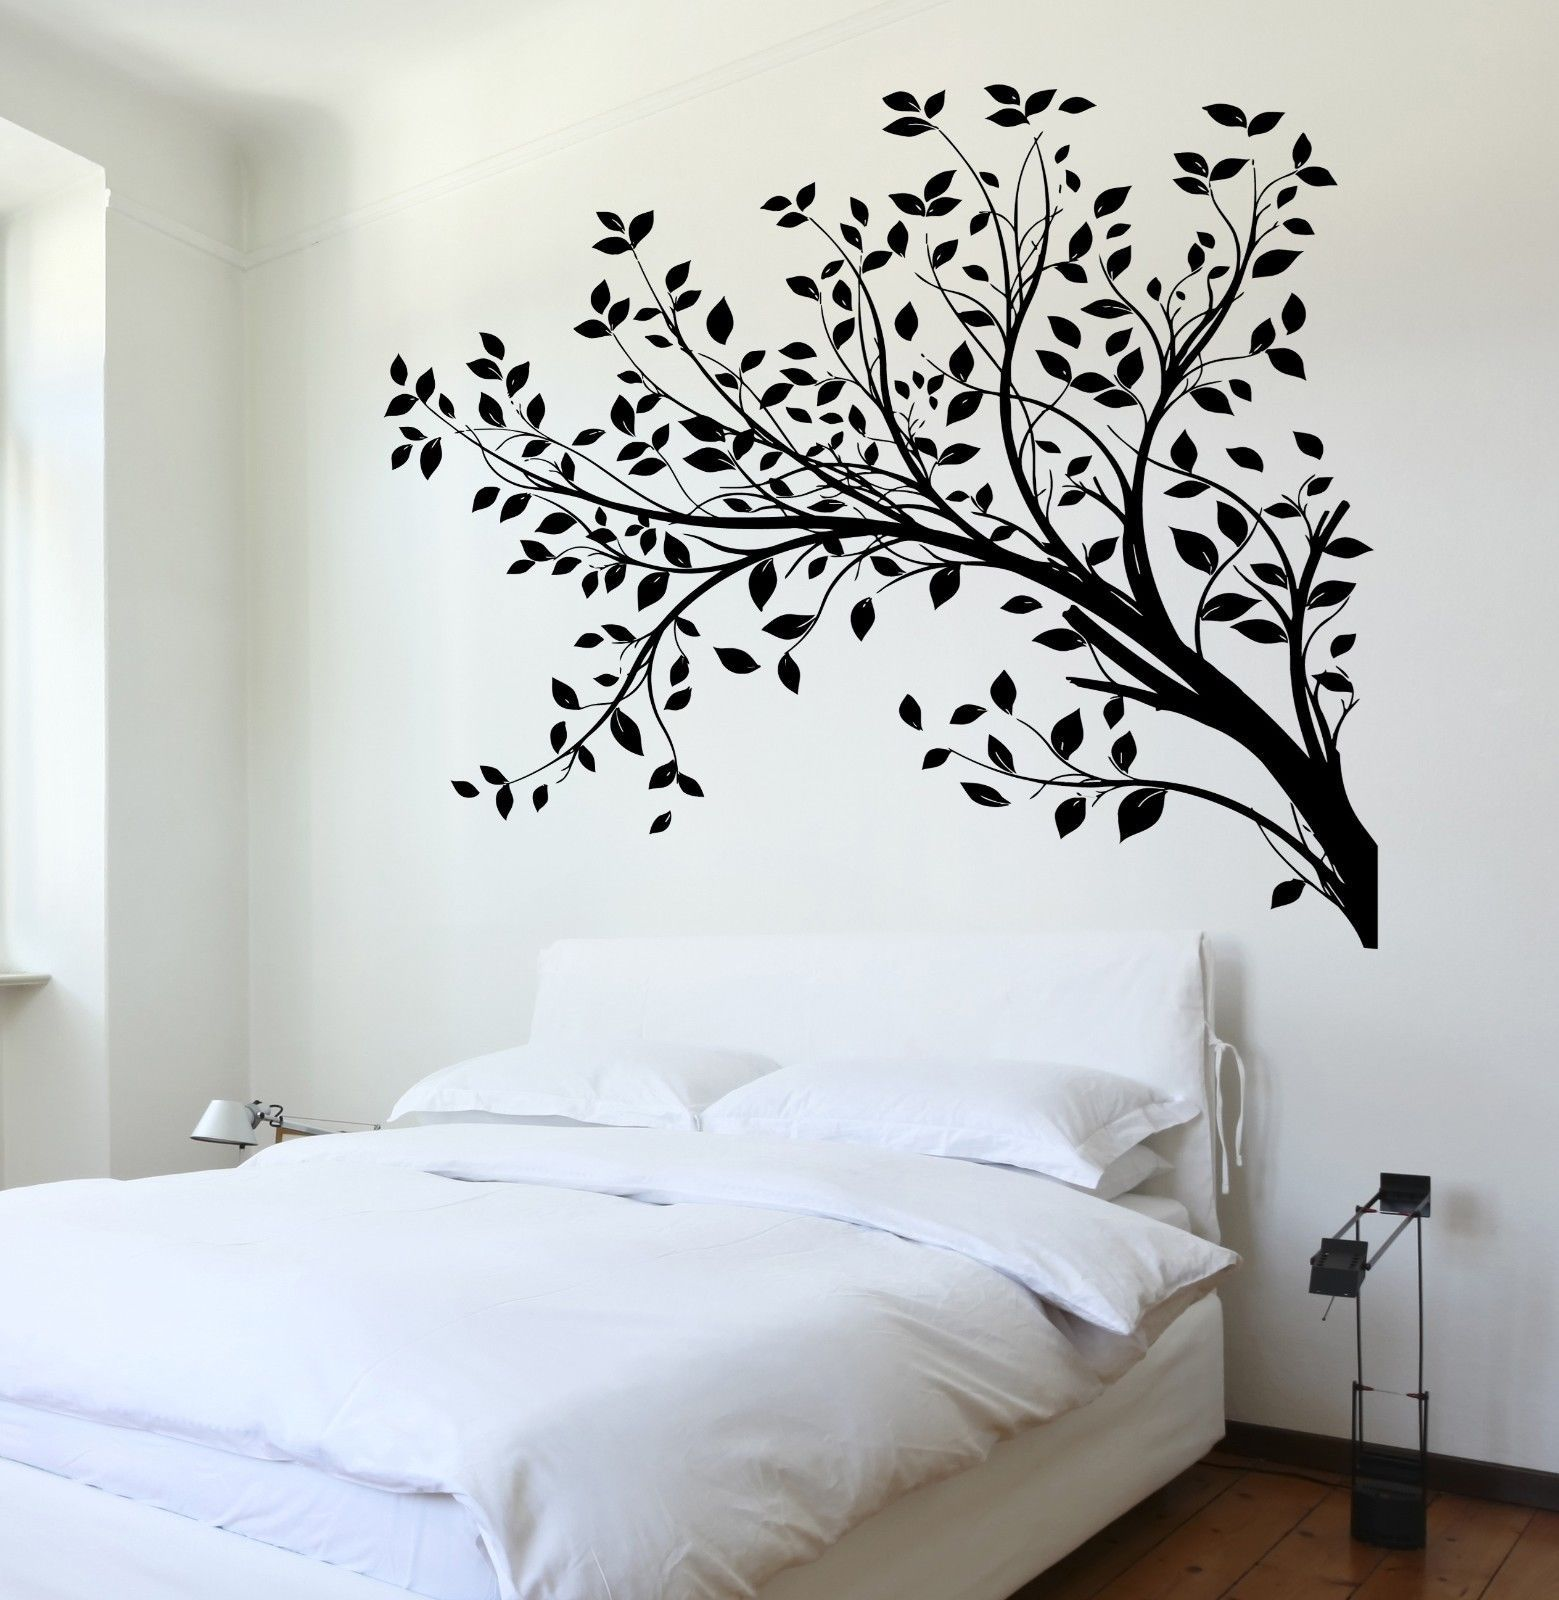 Wall Decal Tree Branch Cool Art For Living Room Vinyl Sticker Z3622 Decals Stickers Vinyl Art